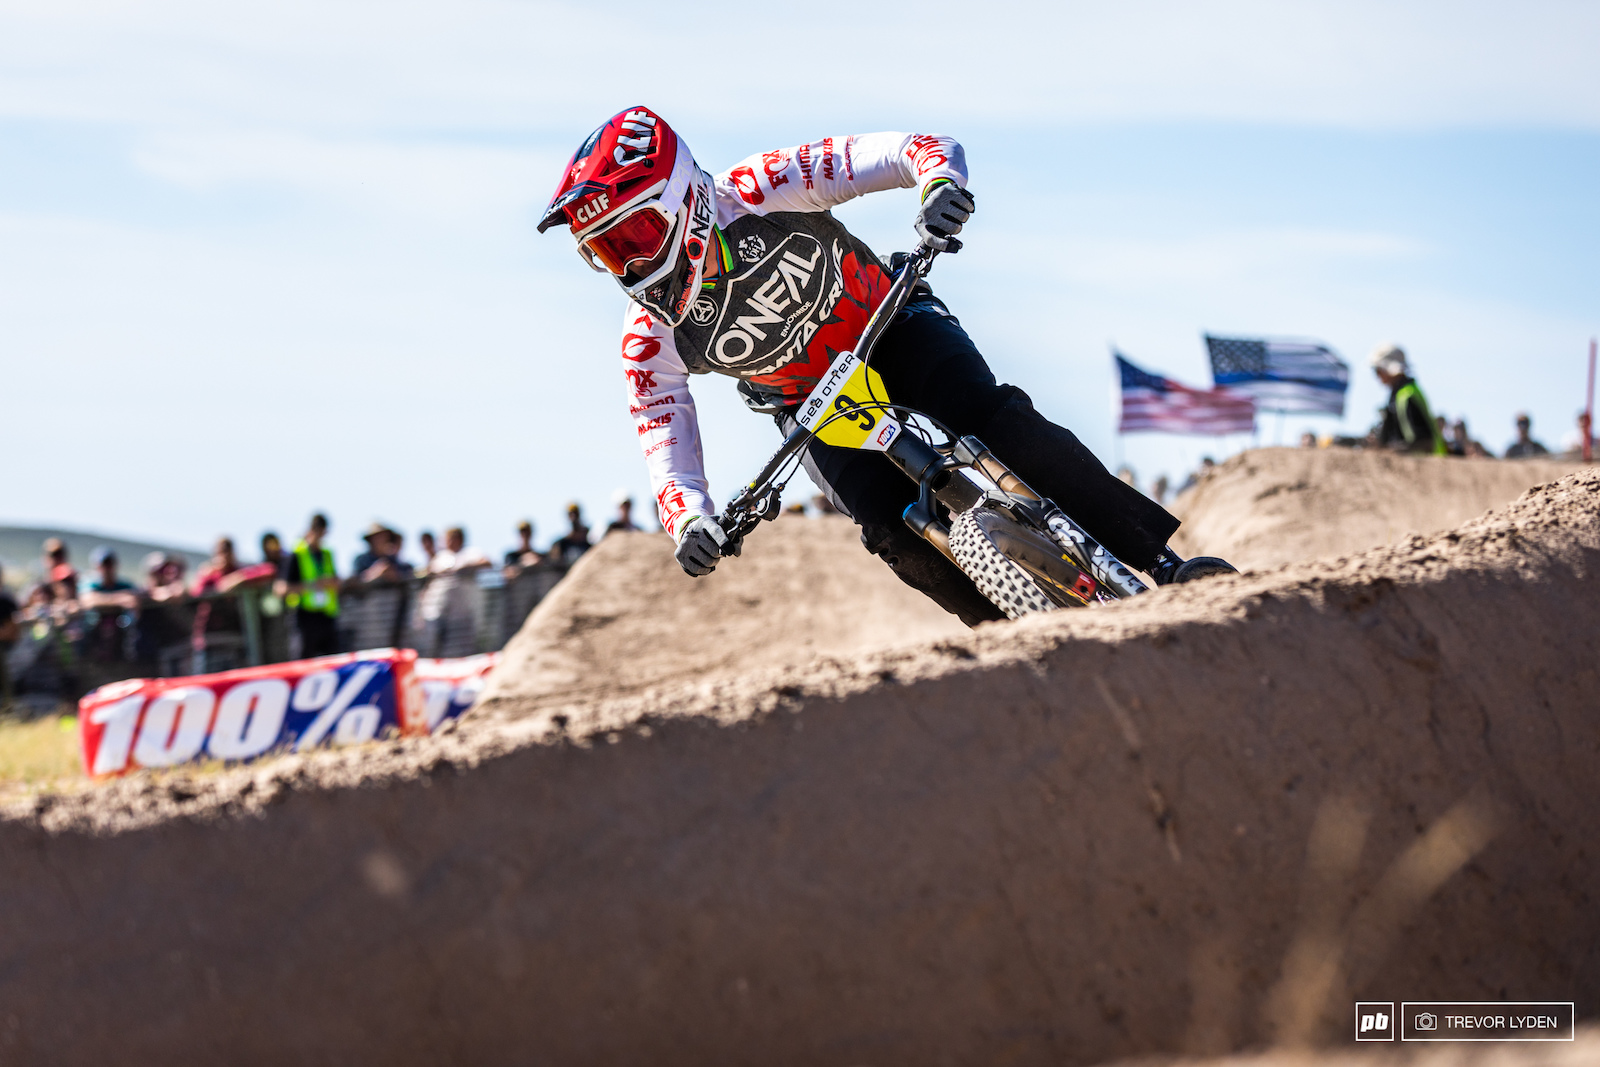 World cup legend Greg Minnar was on hand to try out the Sea Otter Dual Slalom but unfortunately only made it to round two.